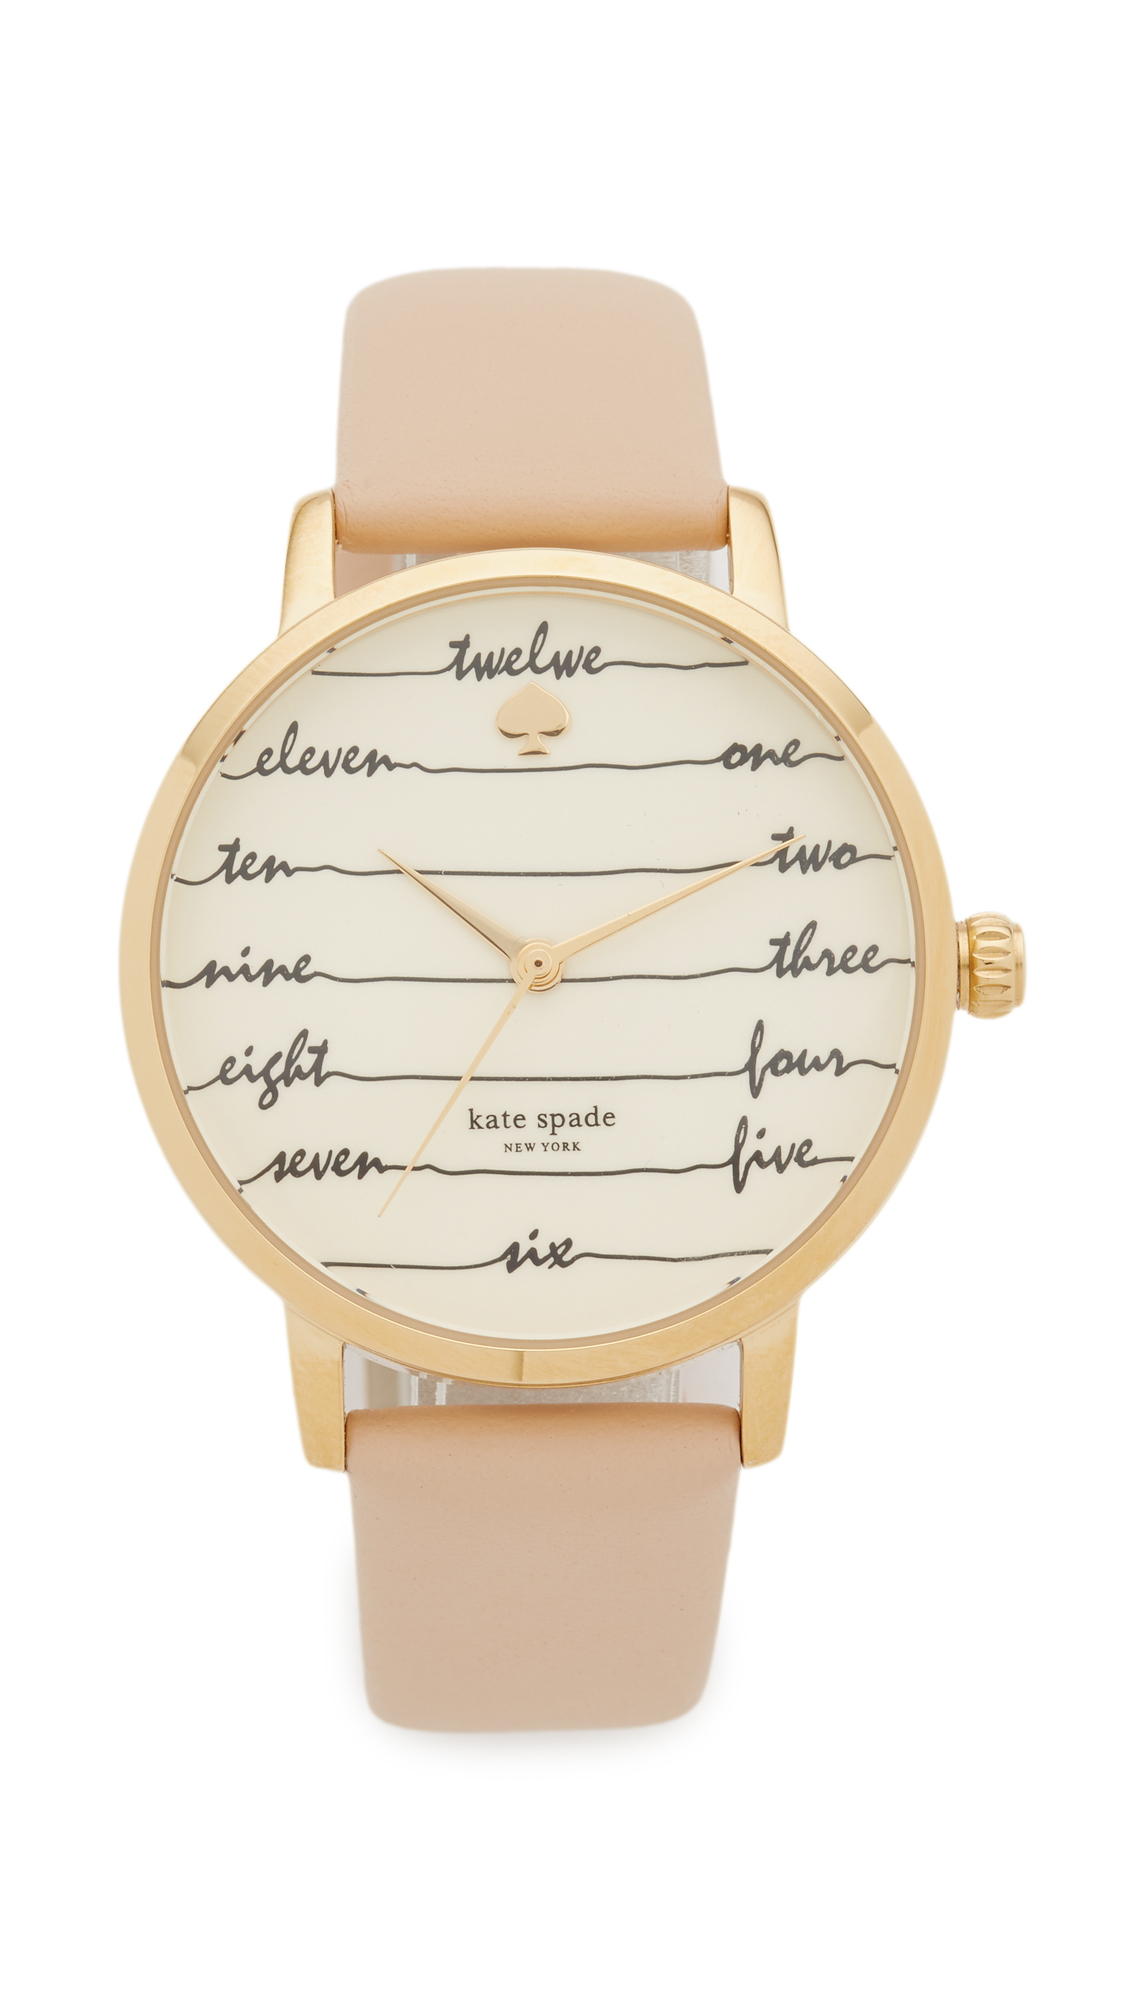 Kate Spade New York Metro Watch - Tan/Gold at Shopbop